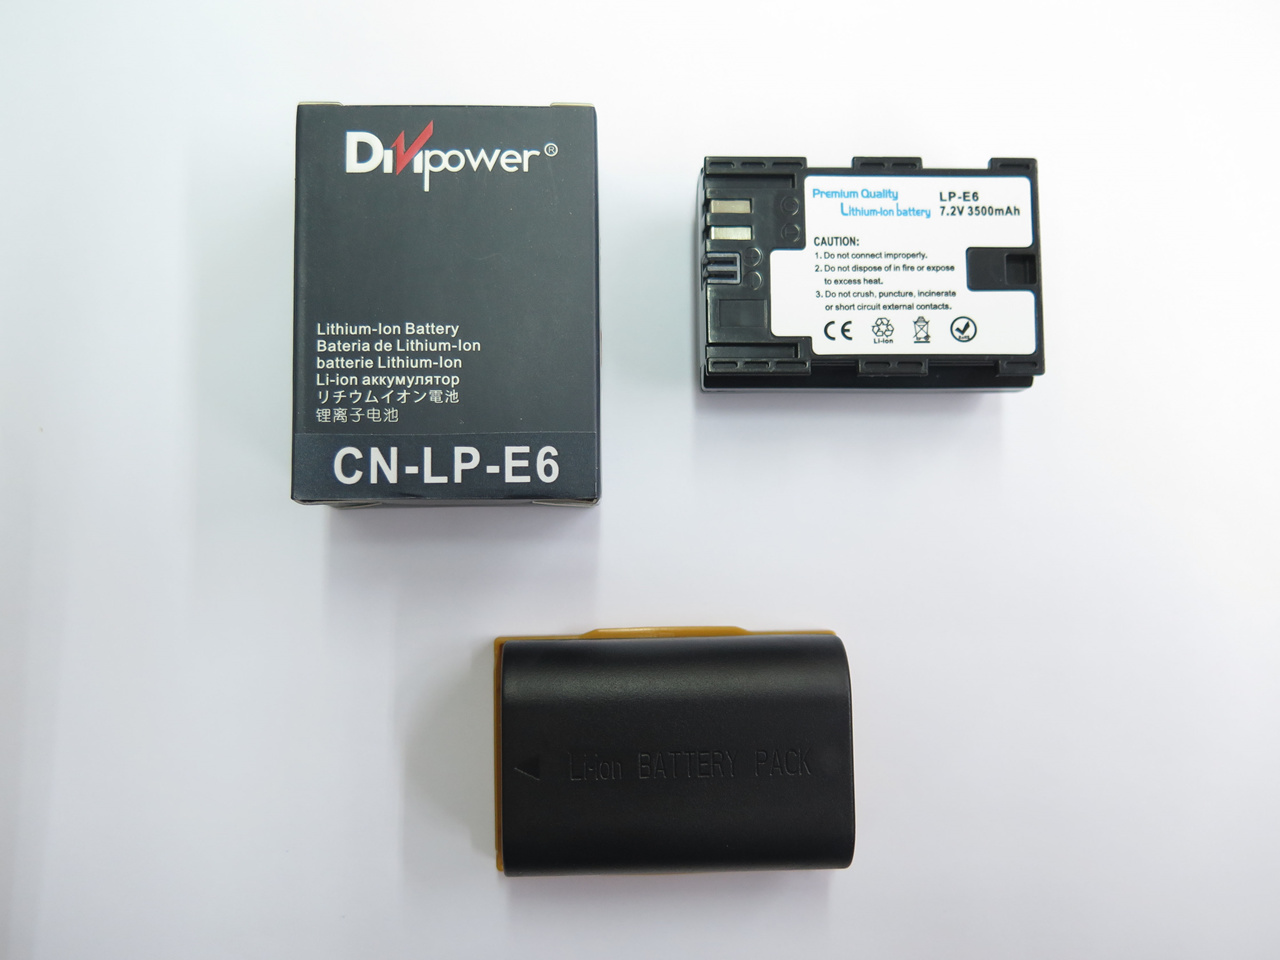 Every Need Want Day Canon Battery Lp E6n Original E6 Rated Voltage Of 72v 3500mah For Use With Eos 5d Mark Iii Ii 6d 7d 70d 60d